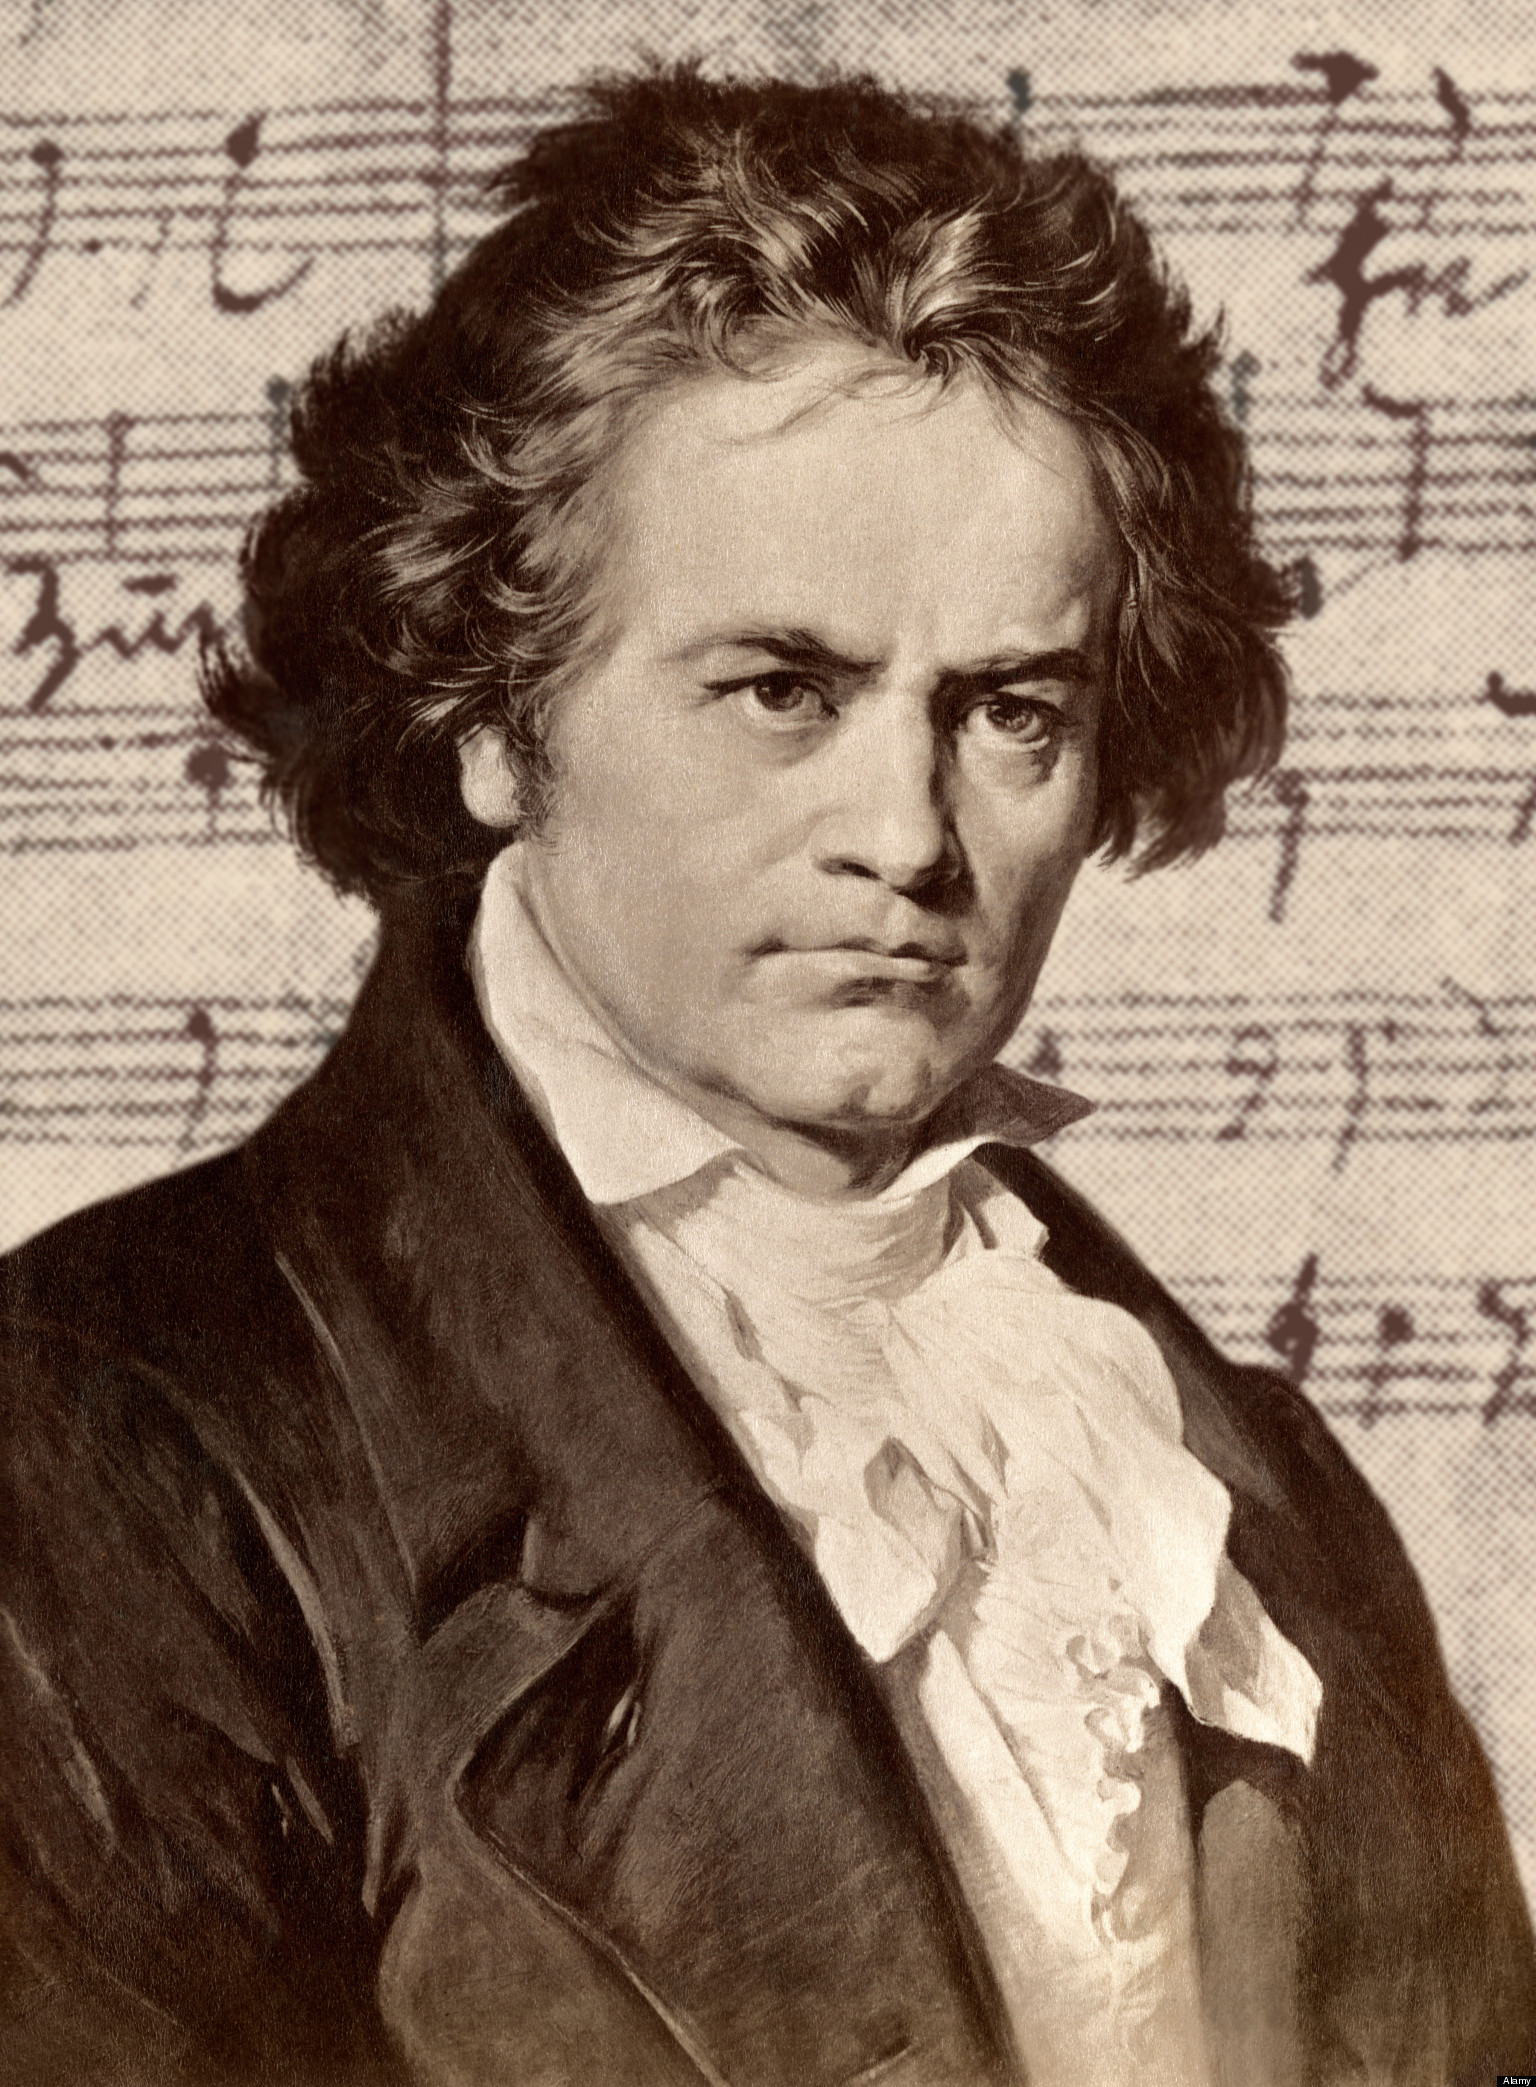 a biography of ludwig van beethoven one of the worlds most famous composers Beethoven music is very popular, and not all recordings are created equal here a list of the most recommended beethoven music albums.